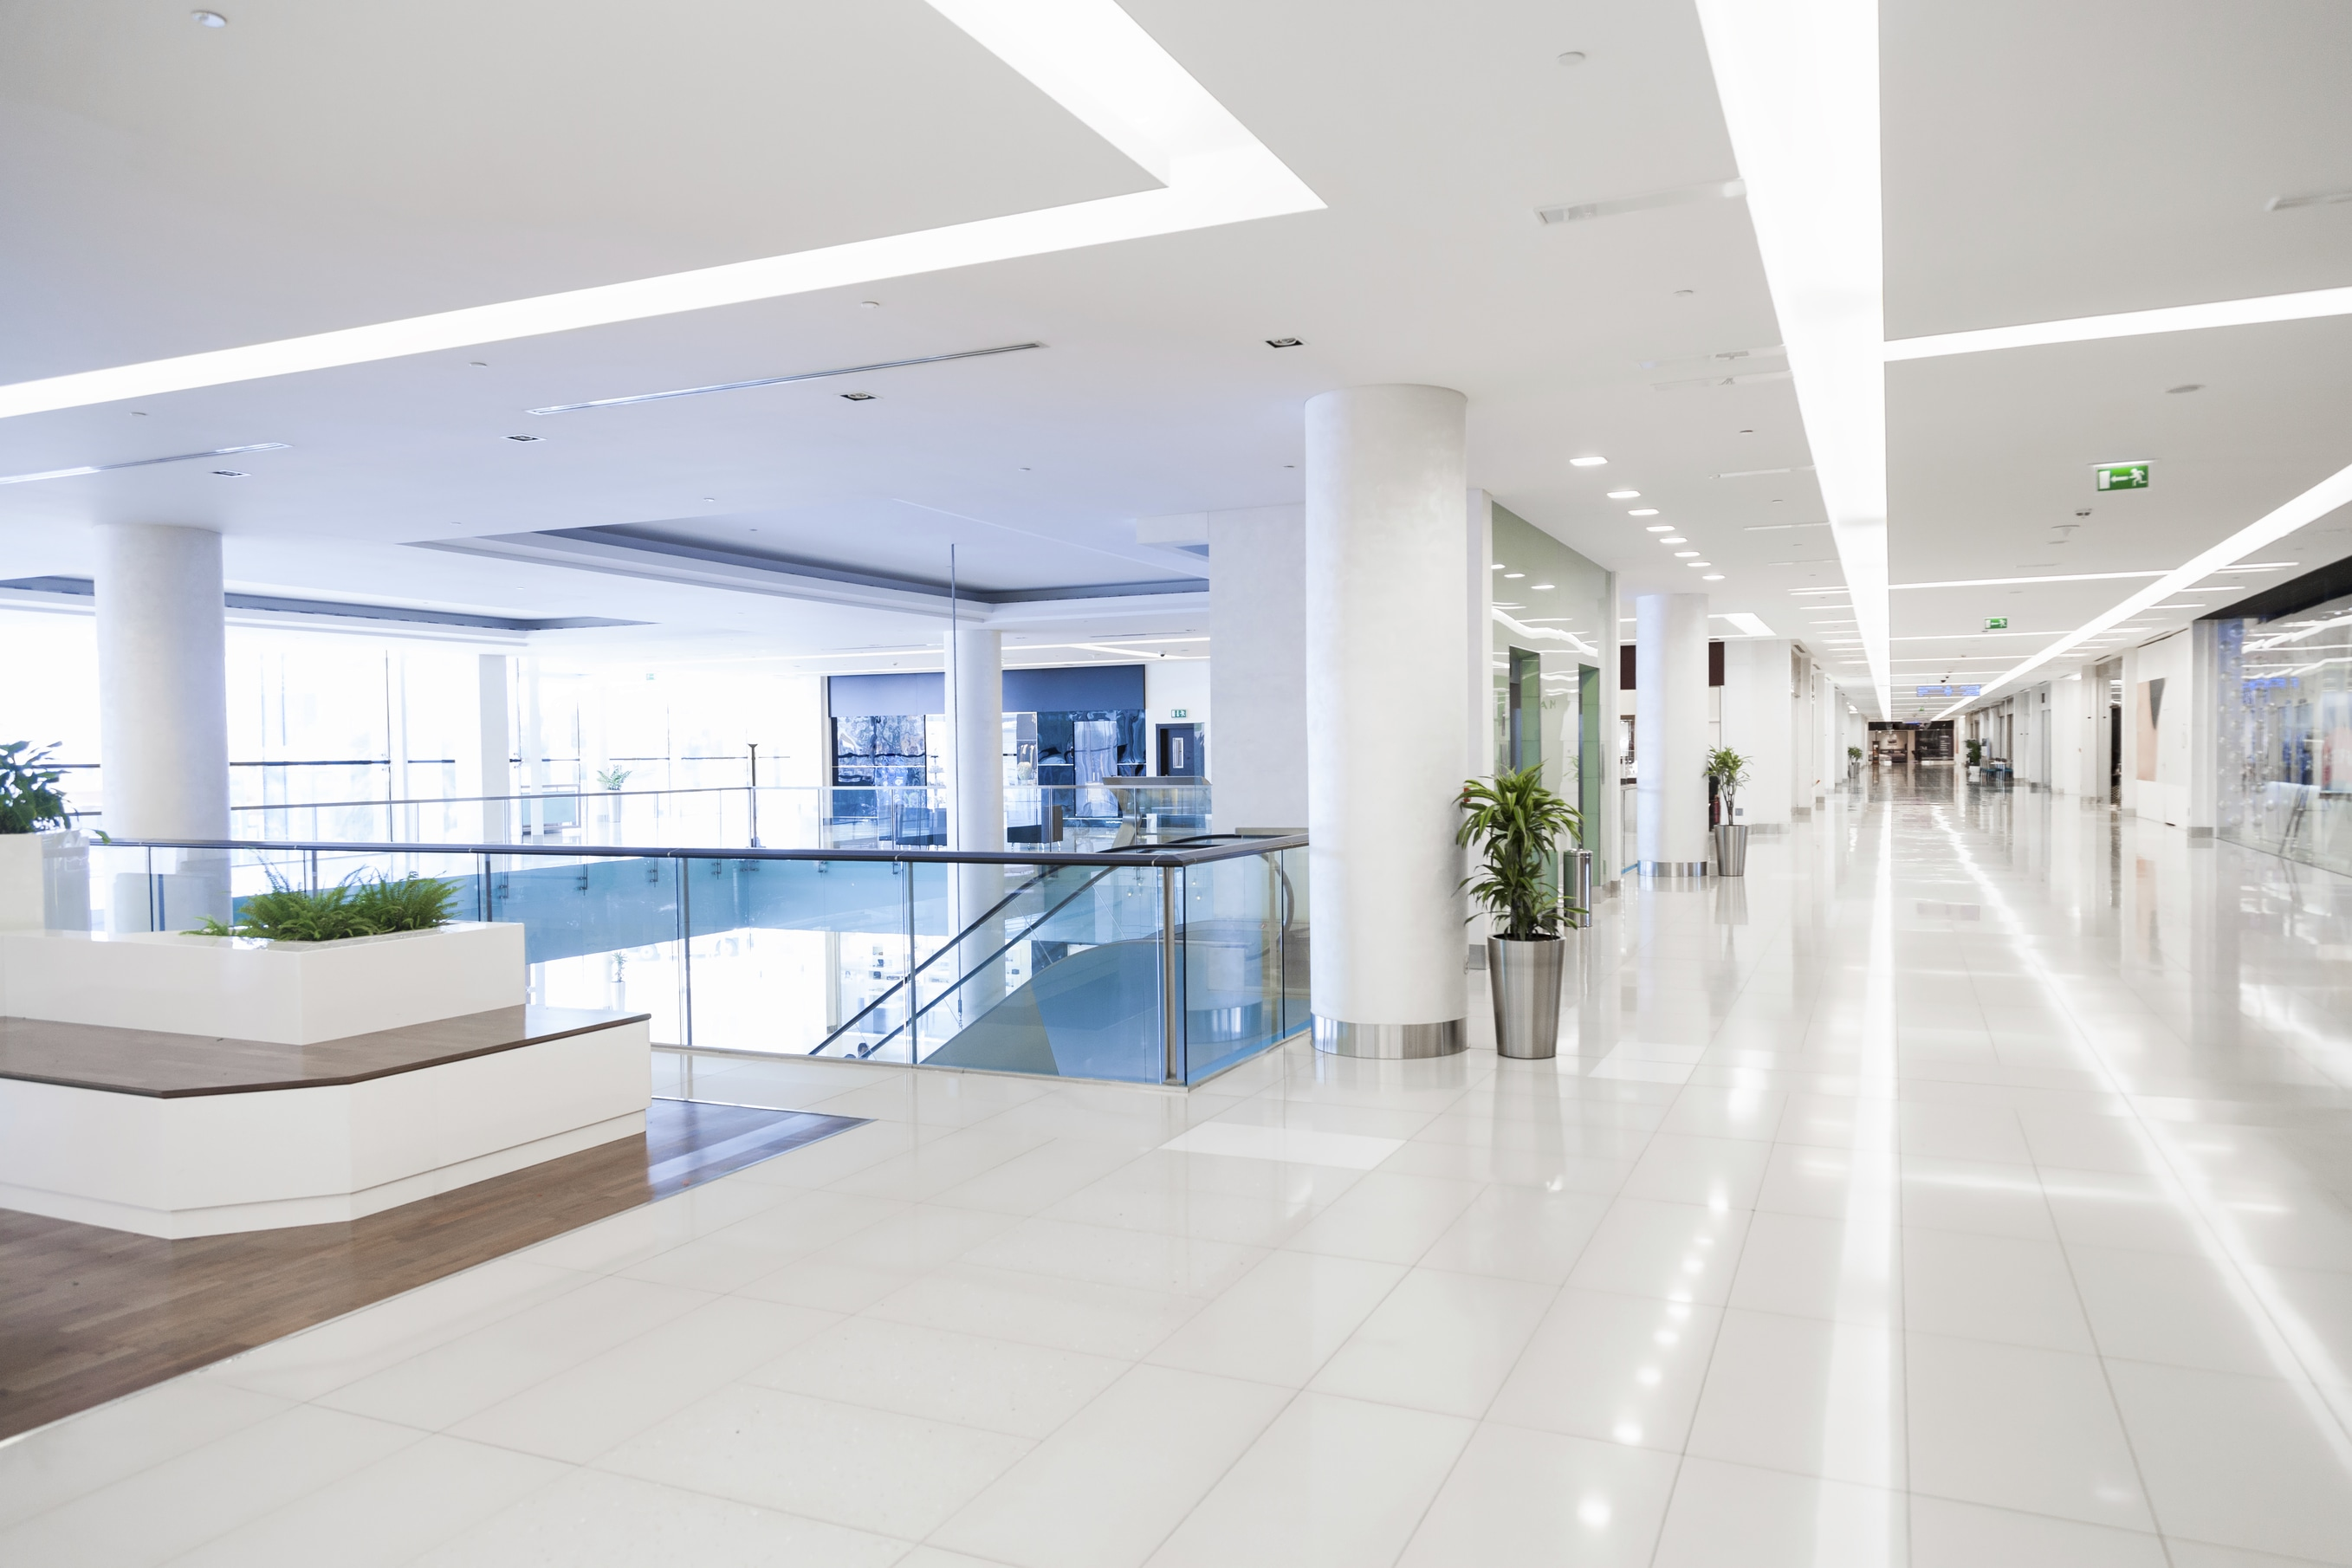 Commercial Cleaning Mccoy Janitorial Services Near Me